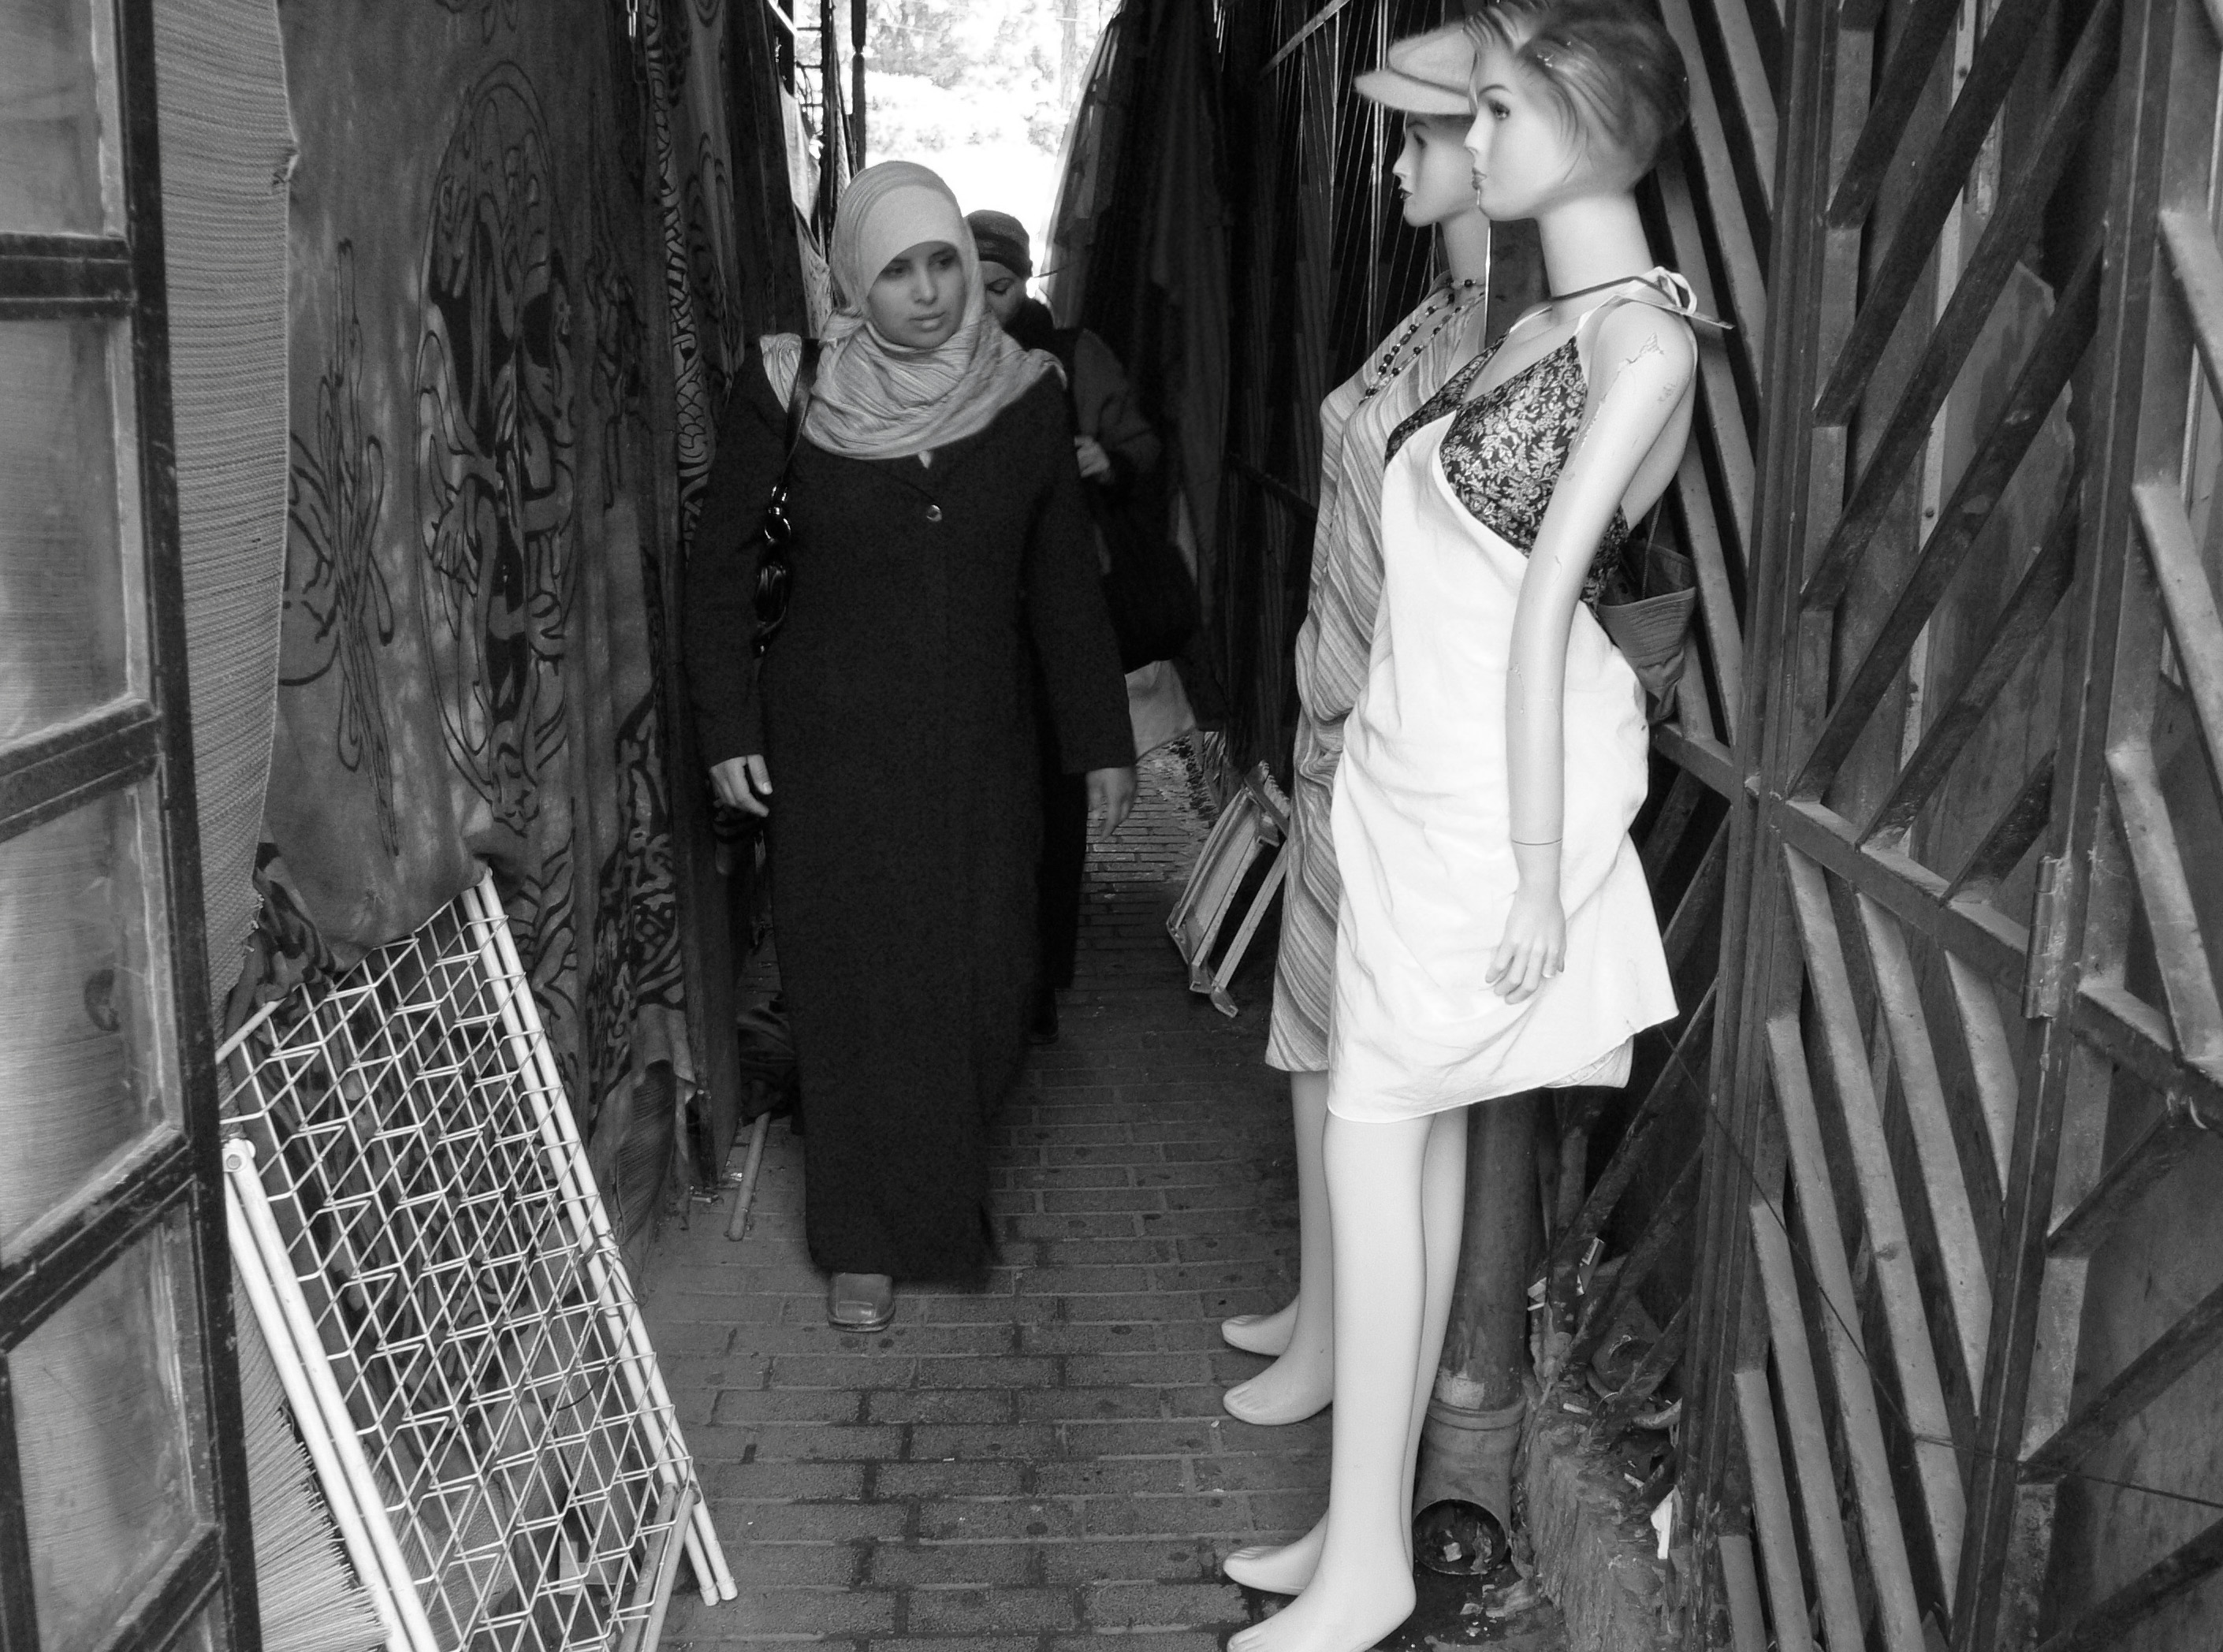 A woman with a head scarf and long black dress walks infront of two female manequins